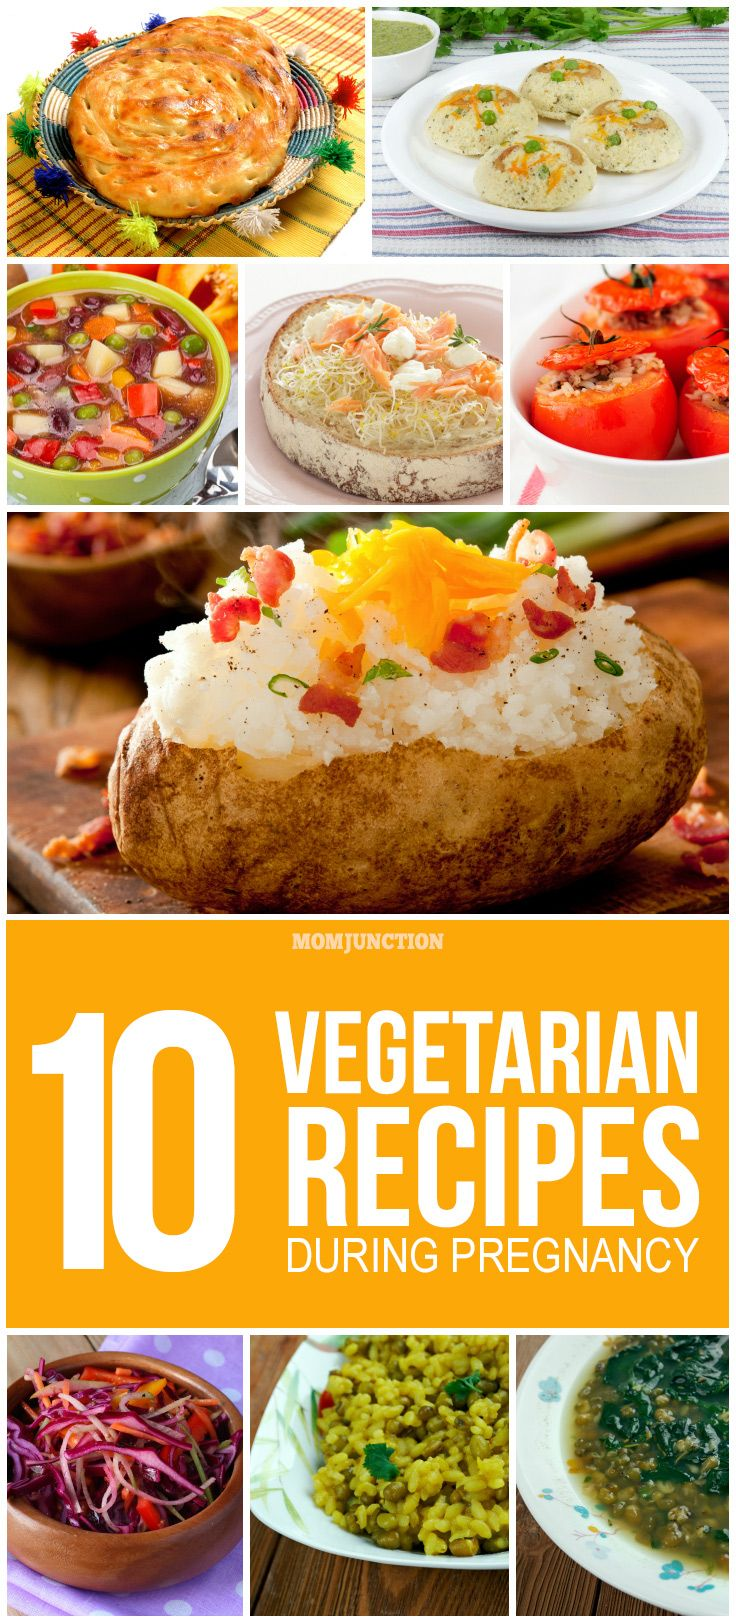 10 healthy vegetarian pregnancy recipes healthy vegetarian recipes 10 healthy vegetarian recipes during pregnancy are you pregnant and trying to start eating healthy do you feel you are running out of interesting recipe forumfinder Image collections